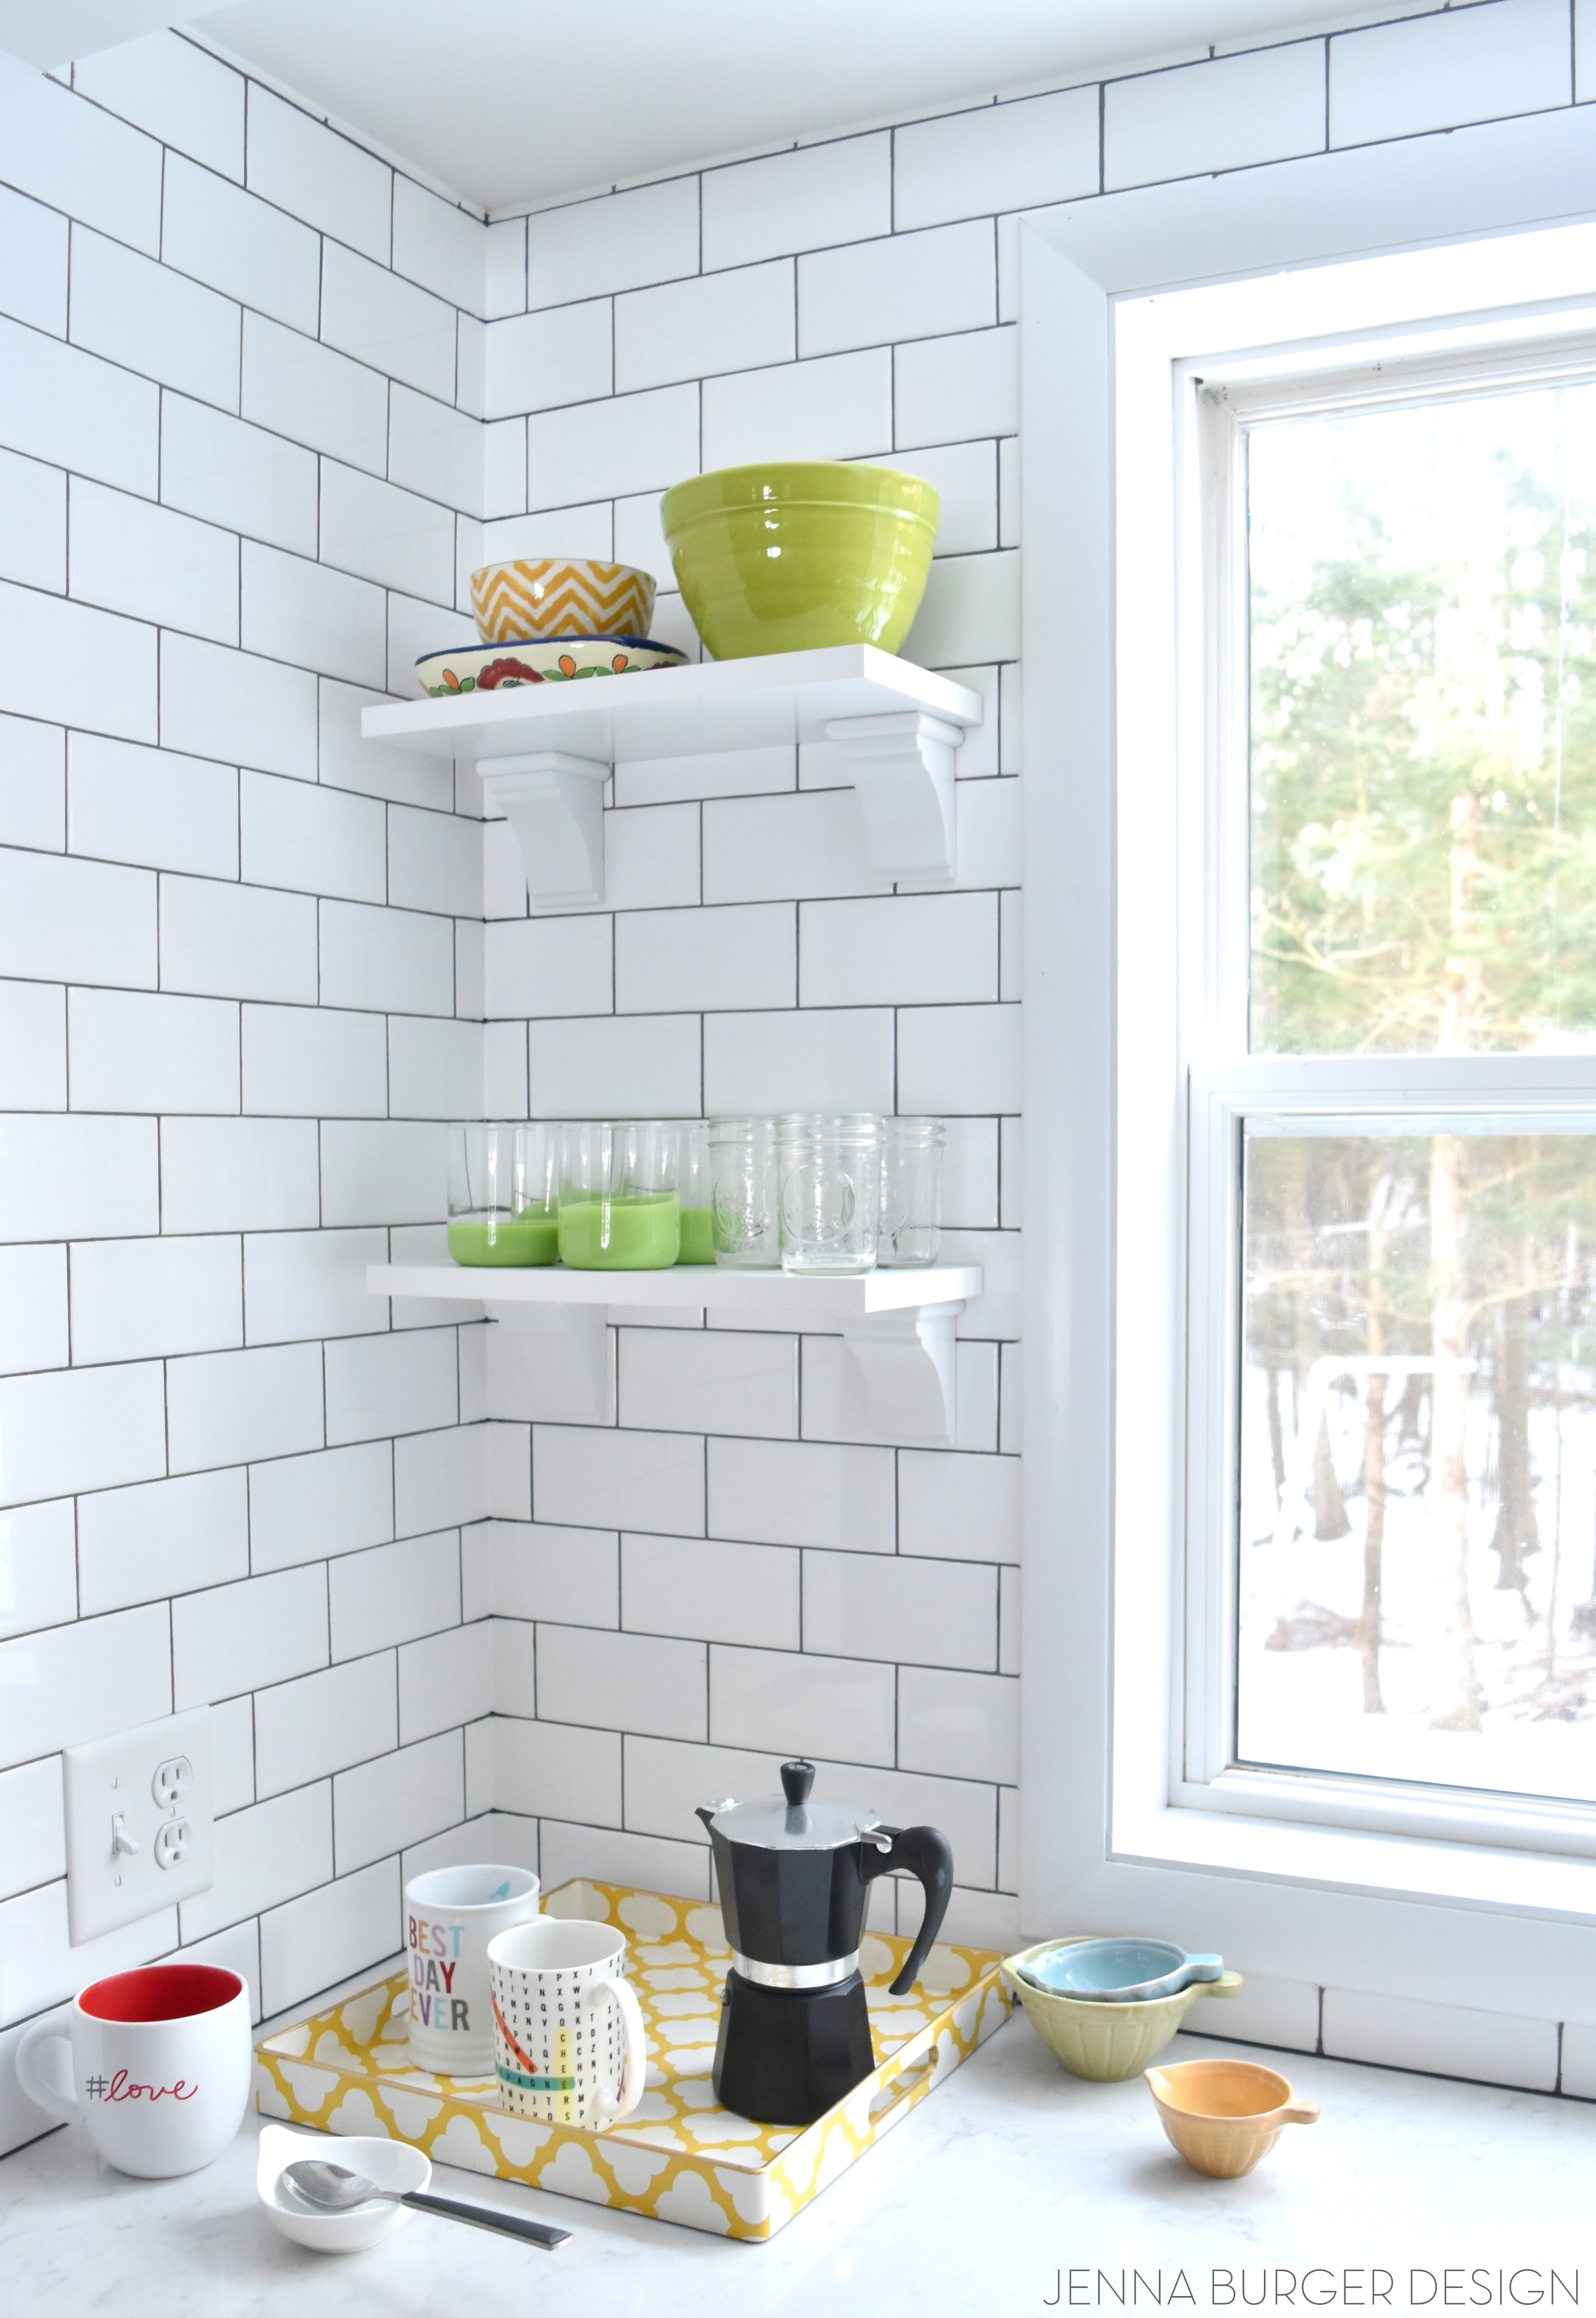 Kitchen Renovation: Details - Jenna Burger